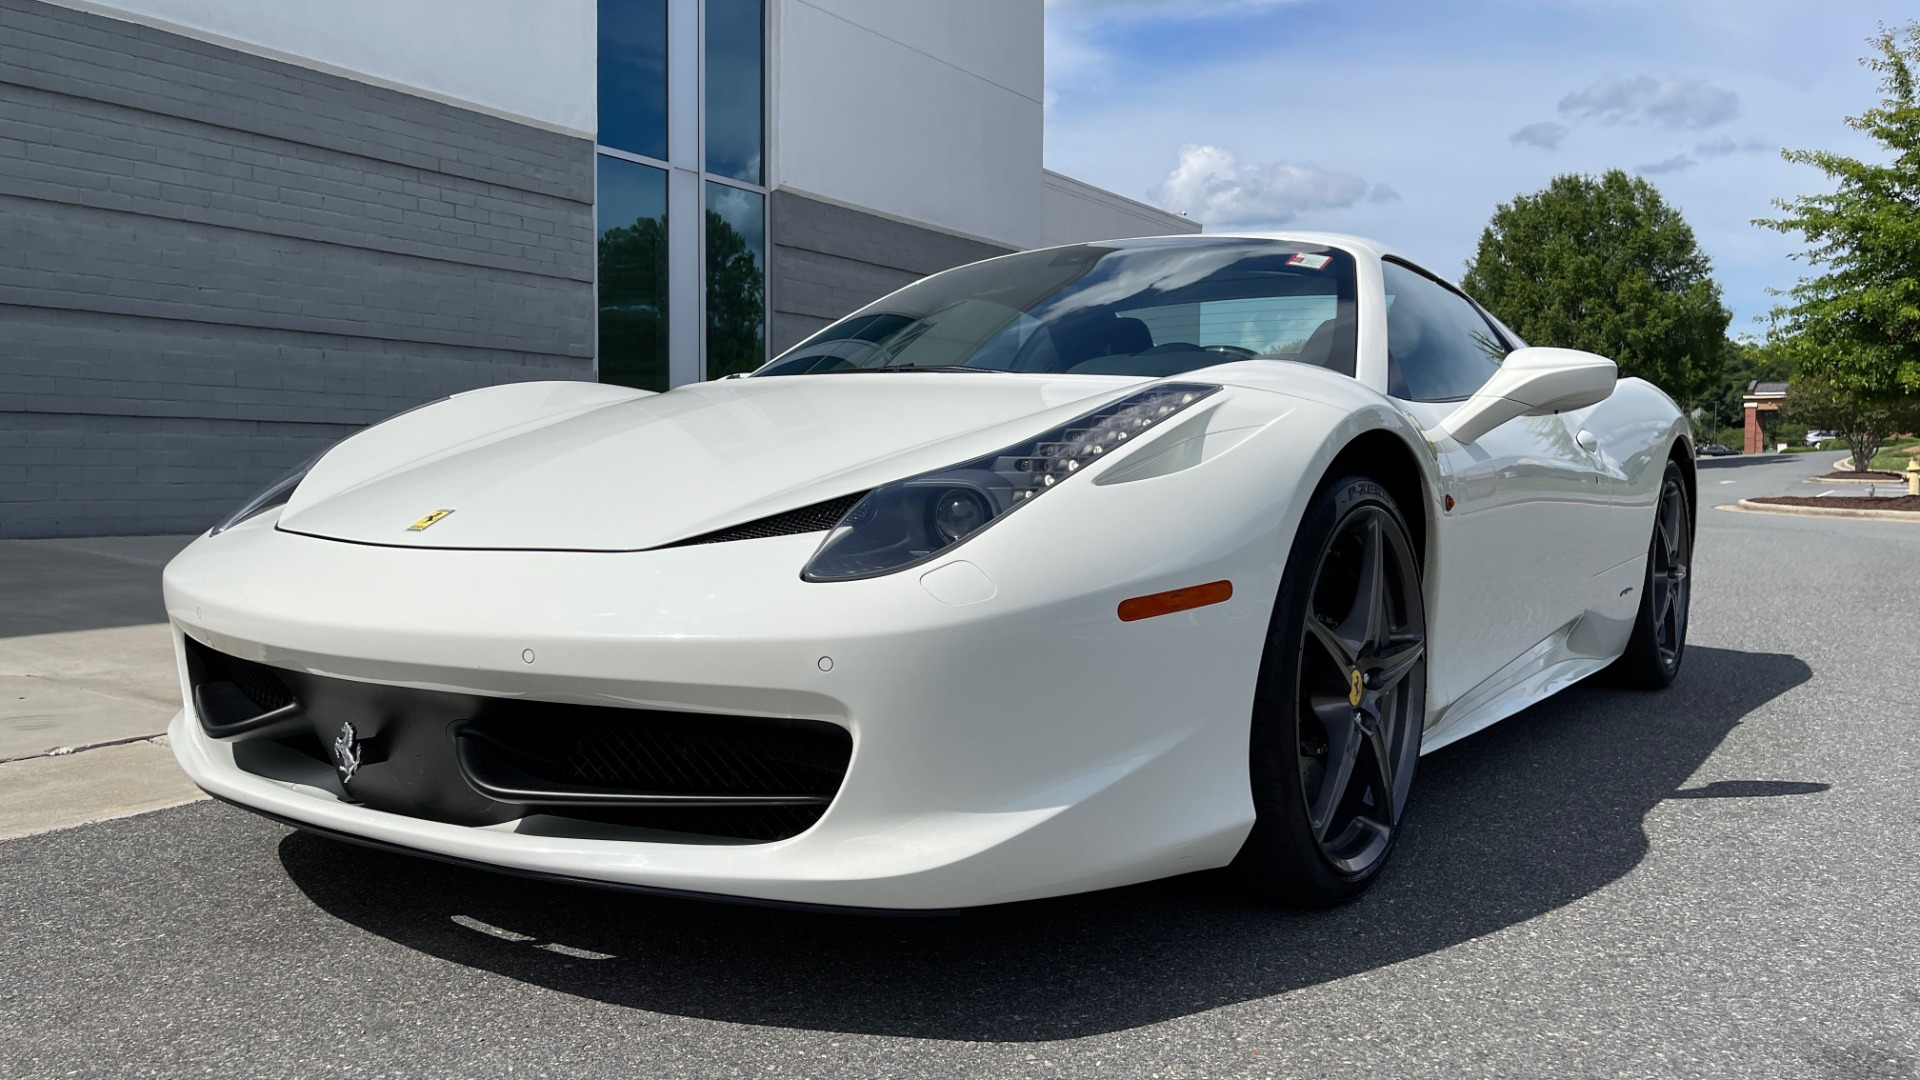 Used 2014 Ferrari 458 ITALIA SPIDER 570HP / F1 AUTO / CF SEATS / CARBON BRAKES / REARVIEW for sale $249,999 at Formula Imports in Charlotte NC 28227 5